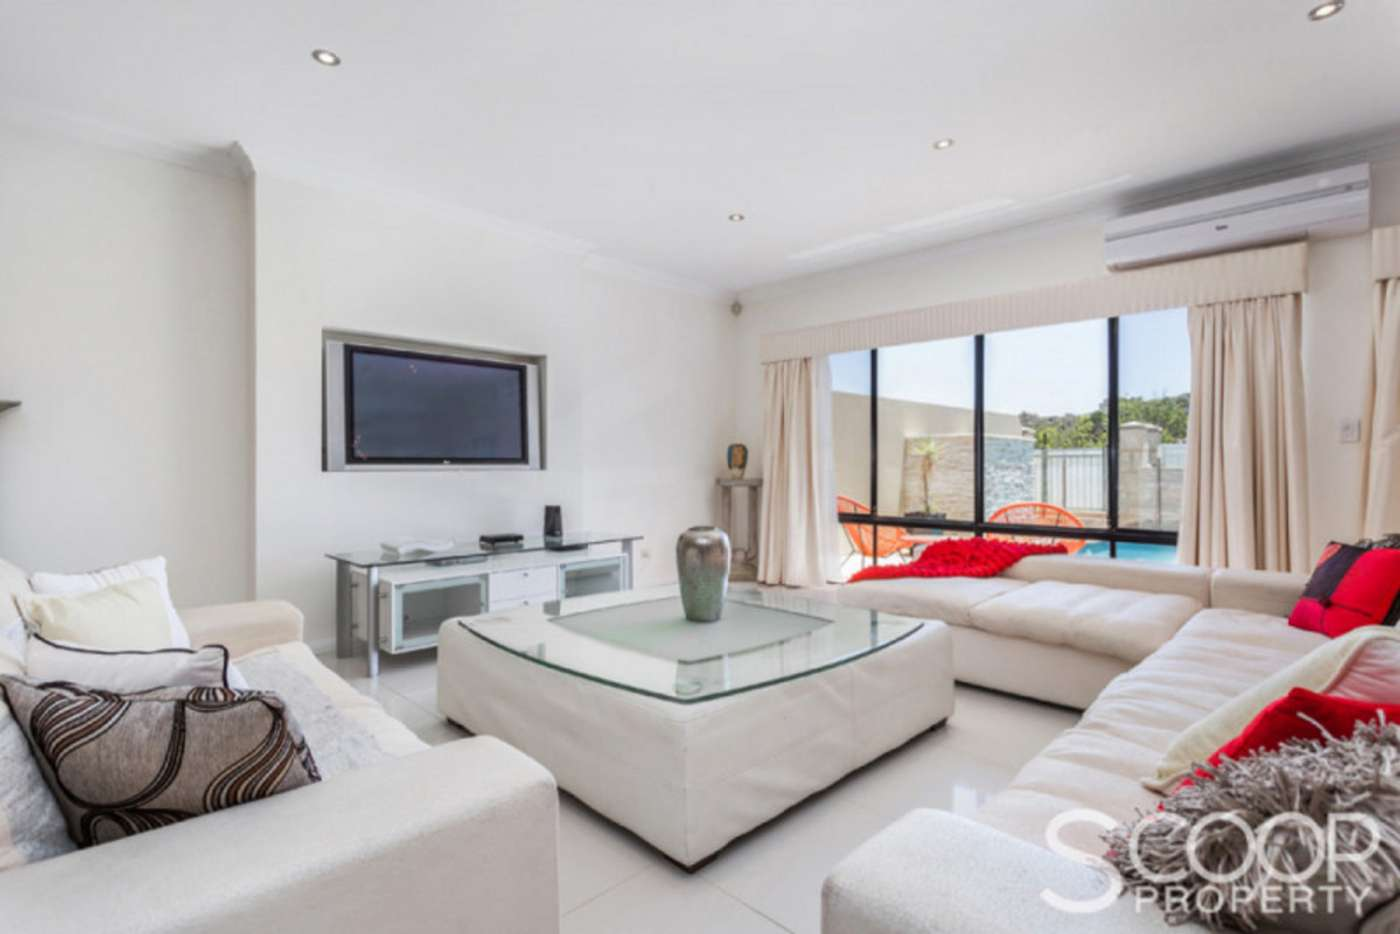 Sixth view of Homely house listing, 3 Yalgorup Lane, LAKE COOGEE, Munster WA 6166